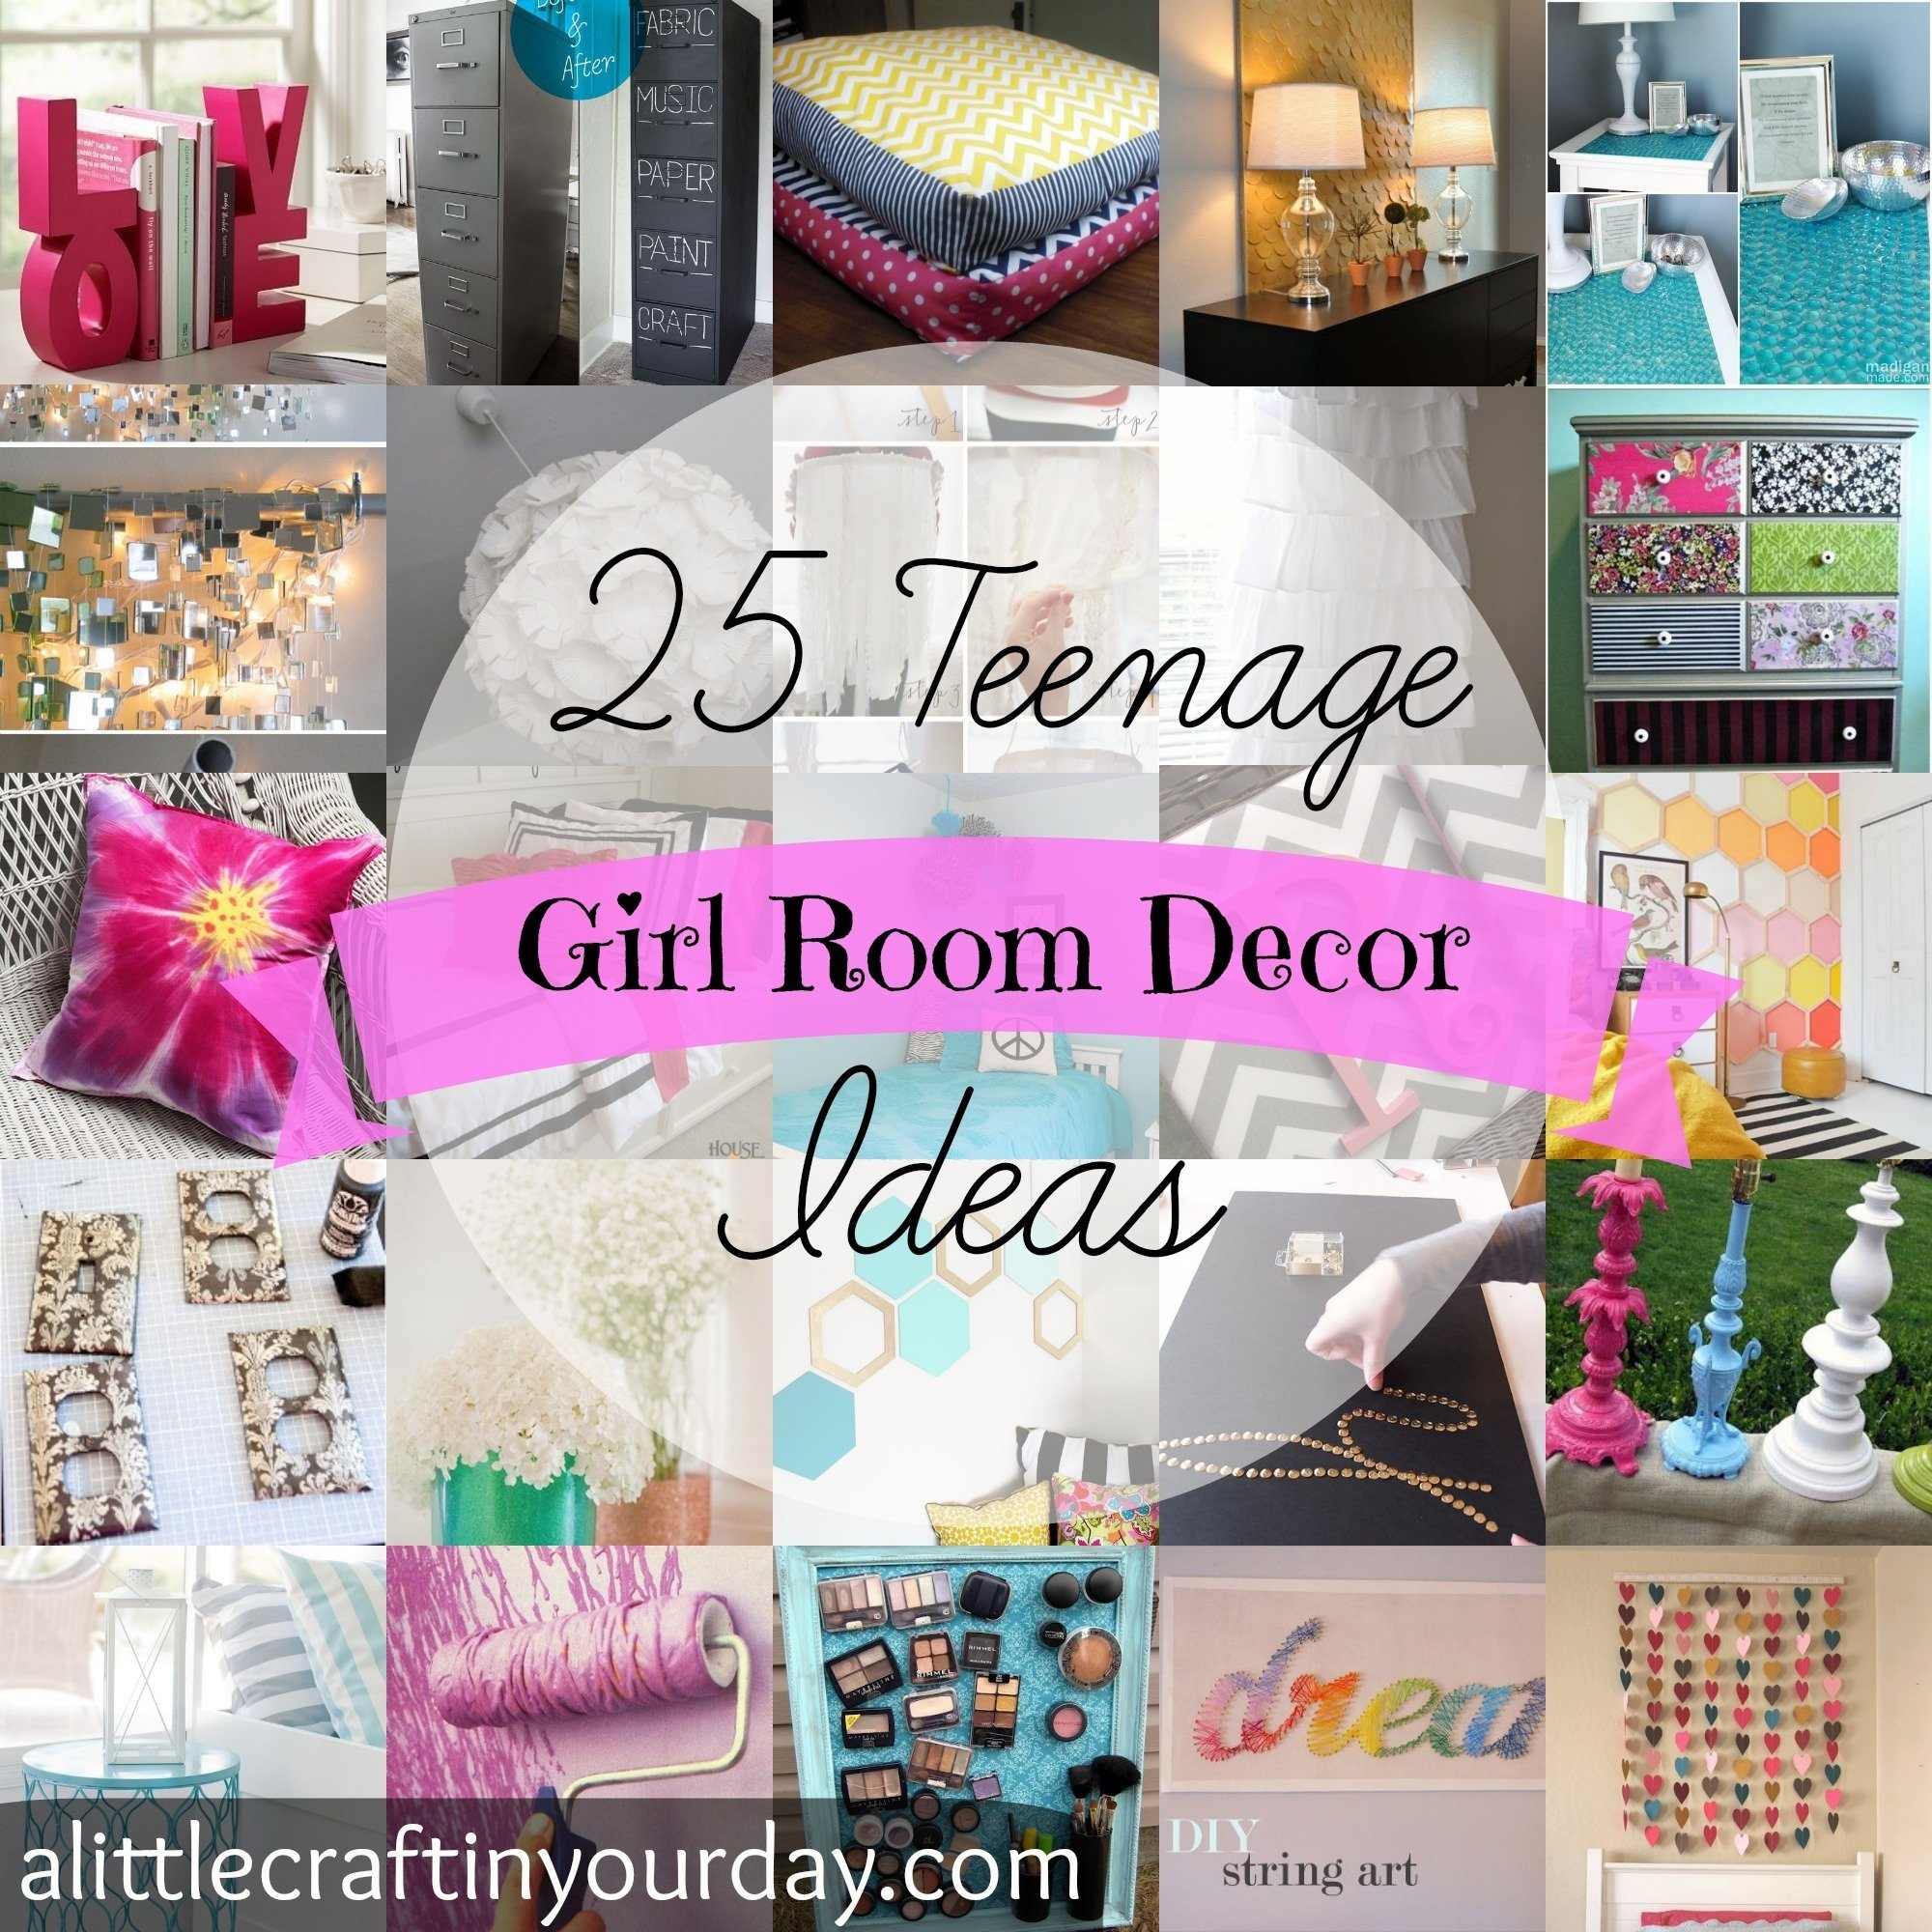 10 Ideal Cool Craft Ideas For Your Room 25 teenage girl room decor ideas a little craft in your day 4